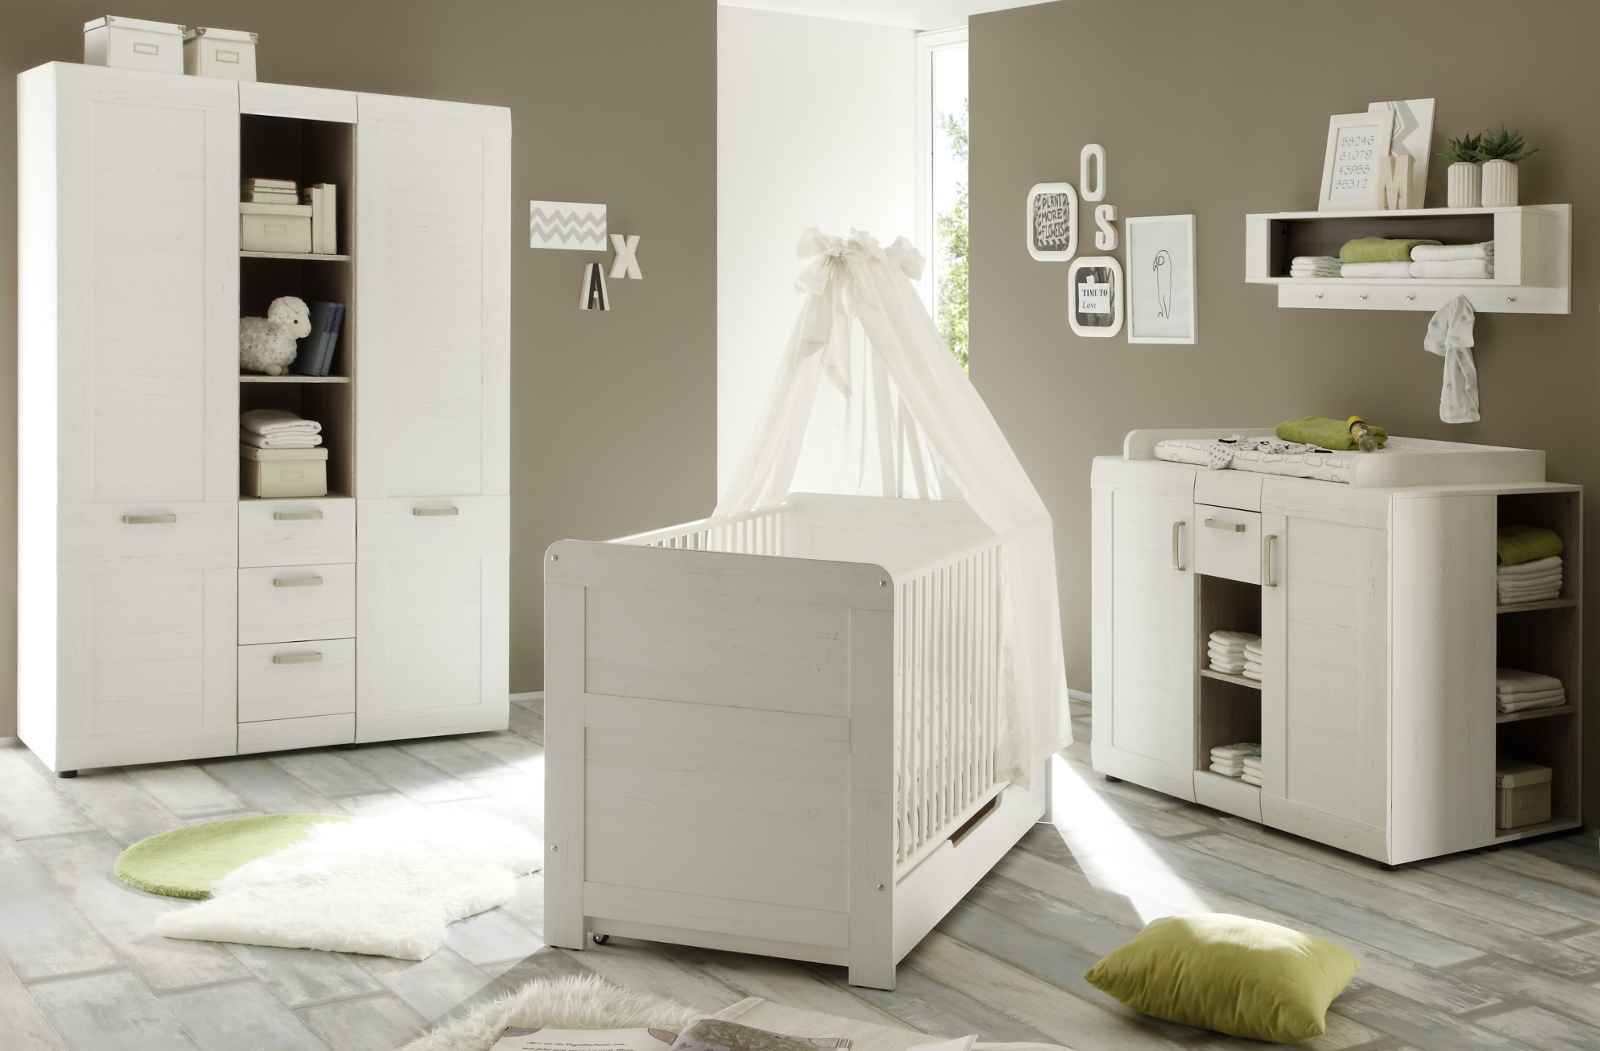 babyzimmer kinderzimmer wei komplett set 3 tlg neu pinie m bel landhaus landi ebay. Black Bedroom Furniture Sets. Home Design Ideas